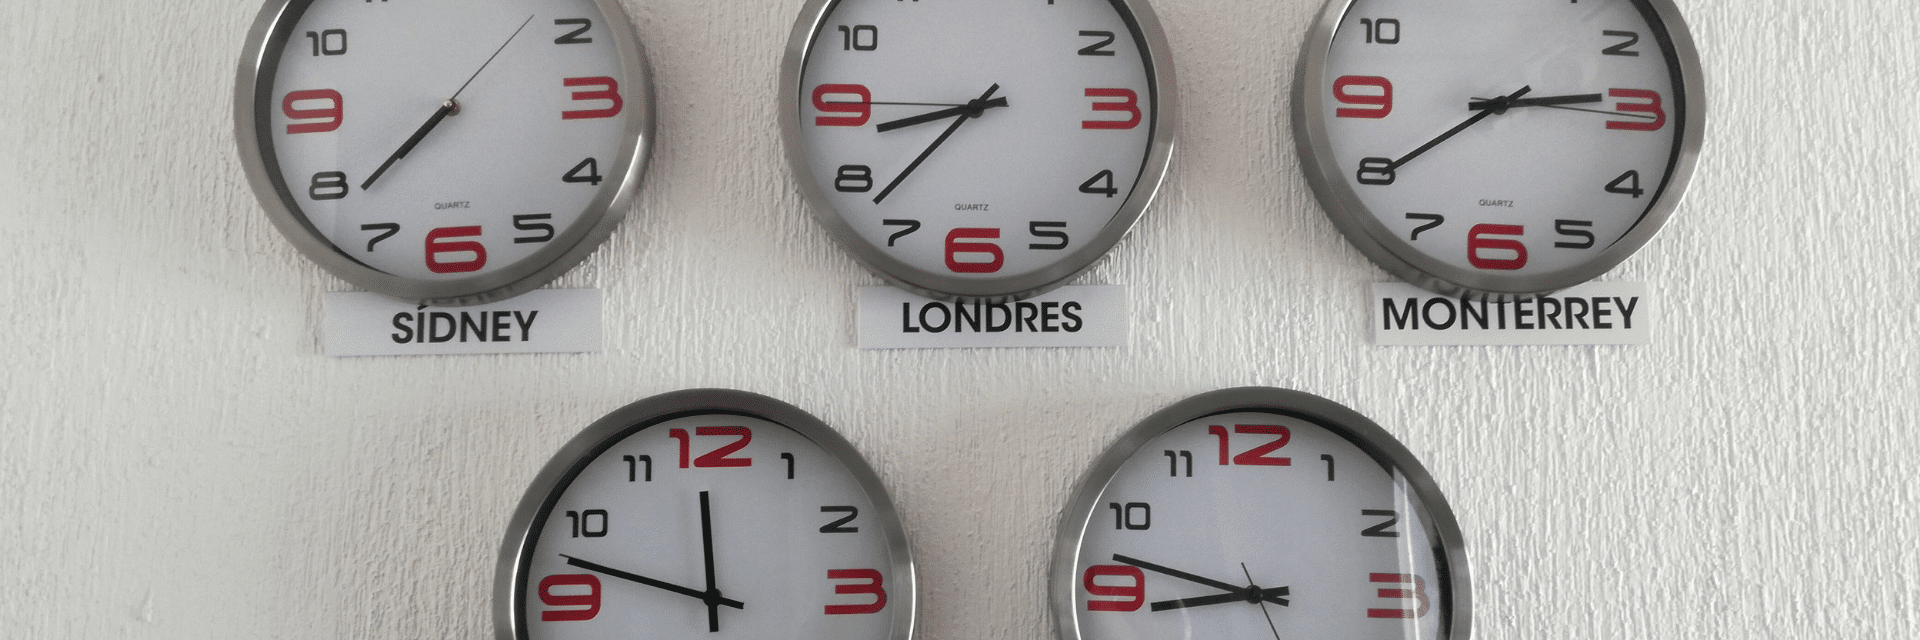 Clocks on the wall show time in different cities